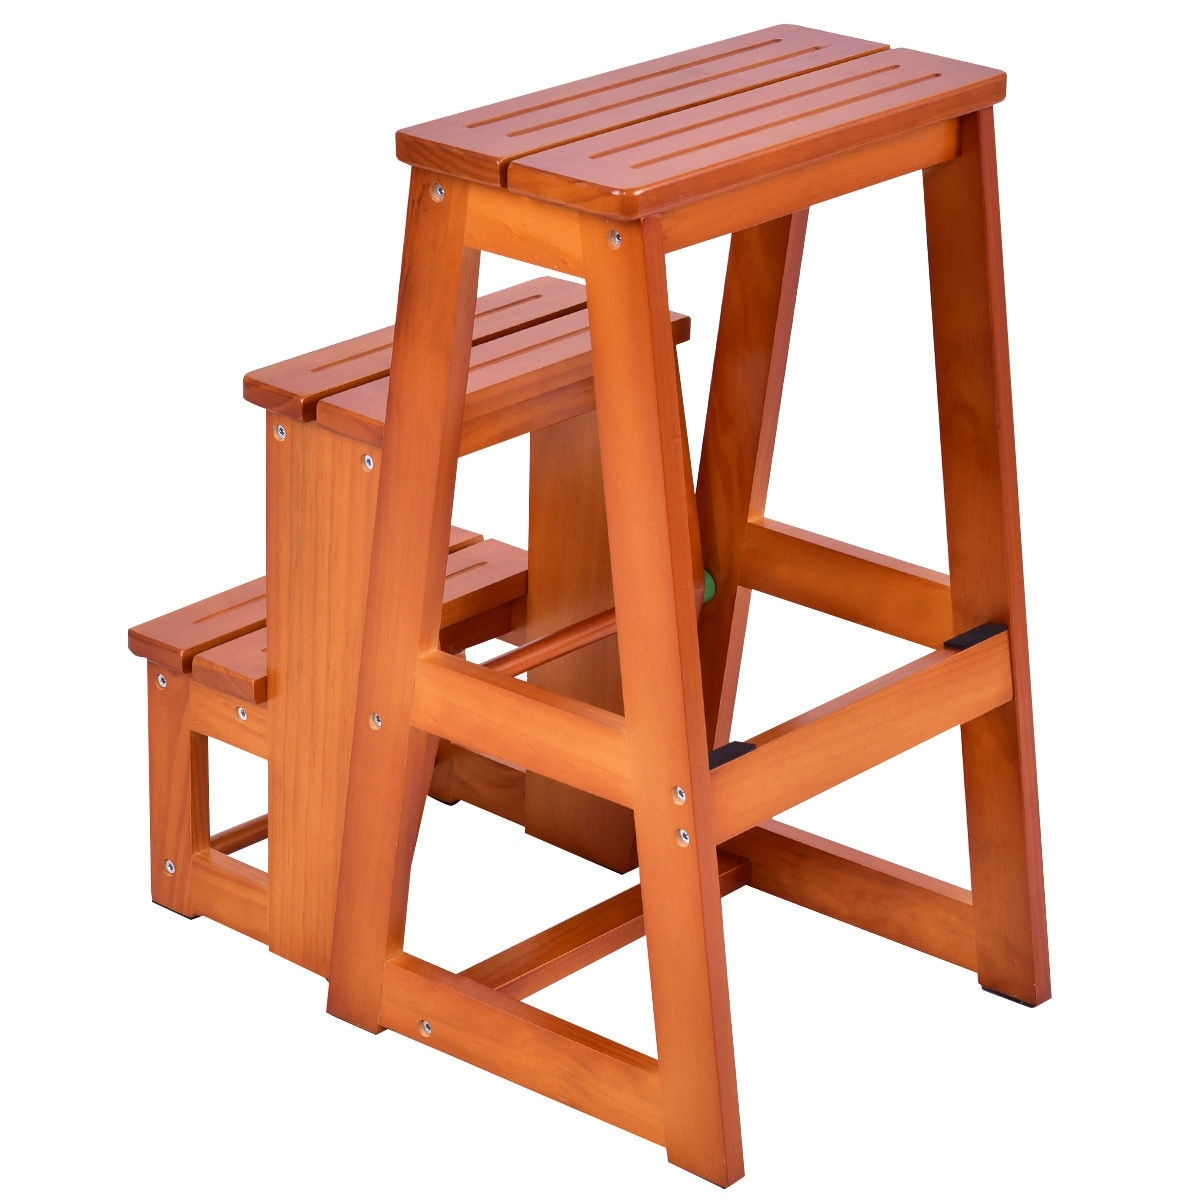 Costway Wood Step Stool Folding 3 Tier Ladder Chair Bench Seat ...